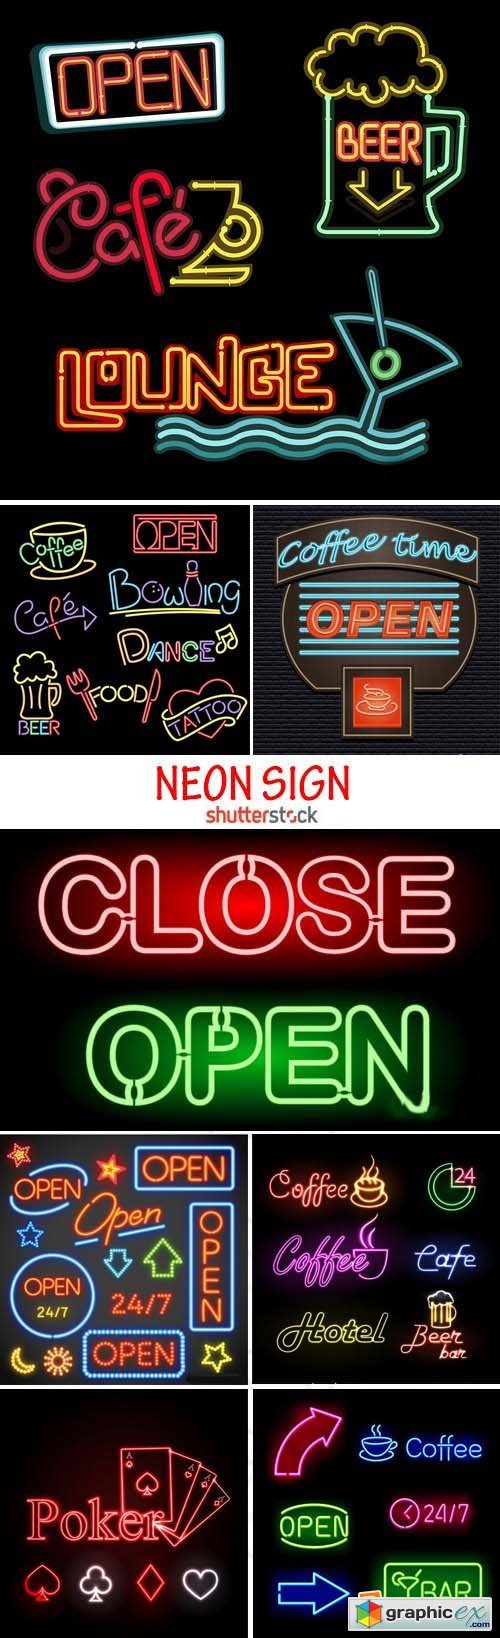 Amazing SS - Open Neon Sign, 25xEPS